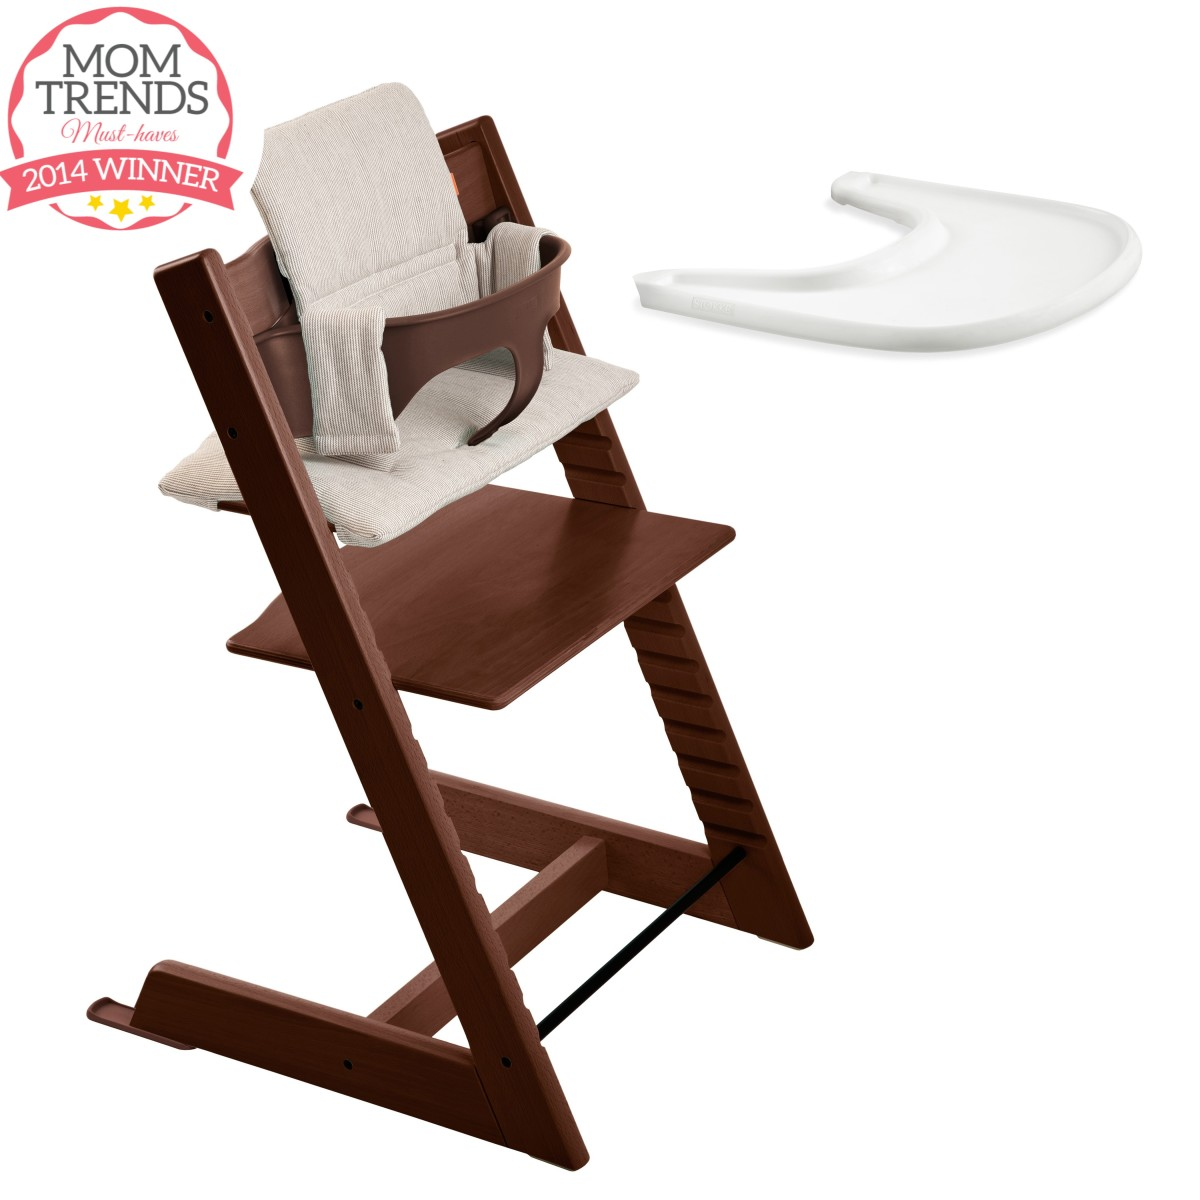 Momtrends MustHaves High Chairs MomTrendsMomTrends – Stokke High Chair Accessories